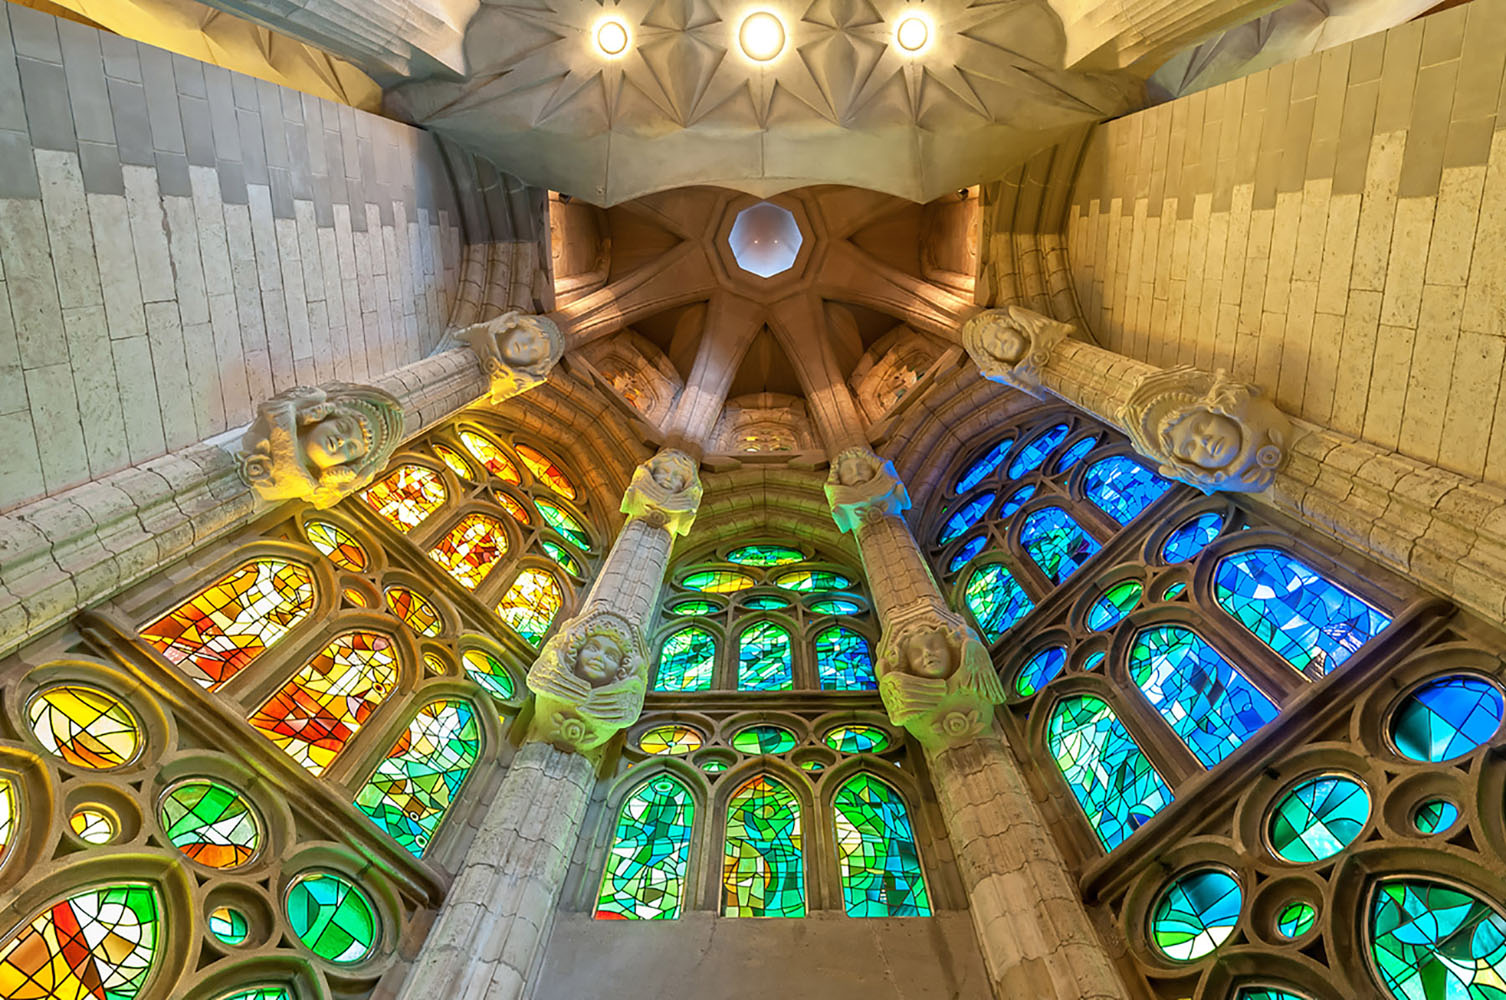 The colorful stained-glass windows of Sagrada Familia